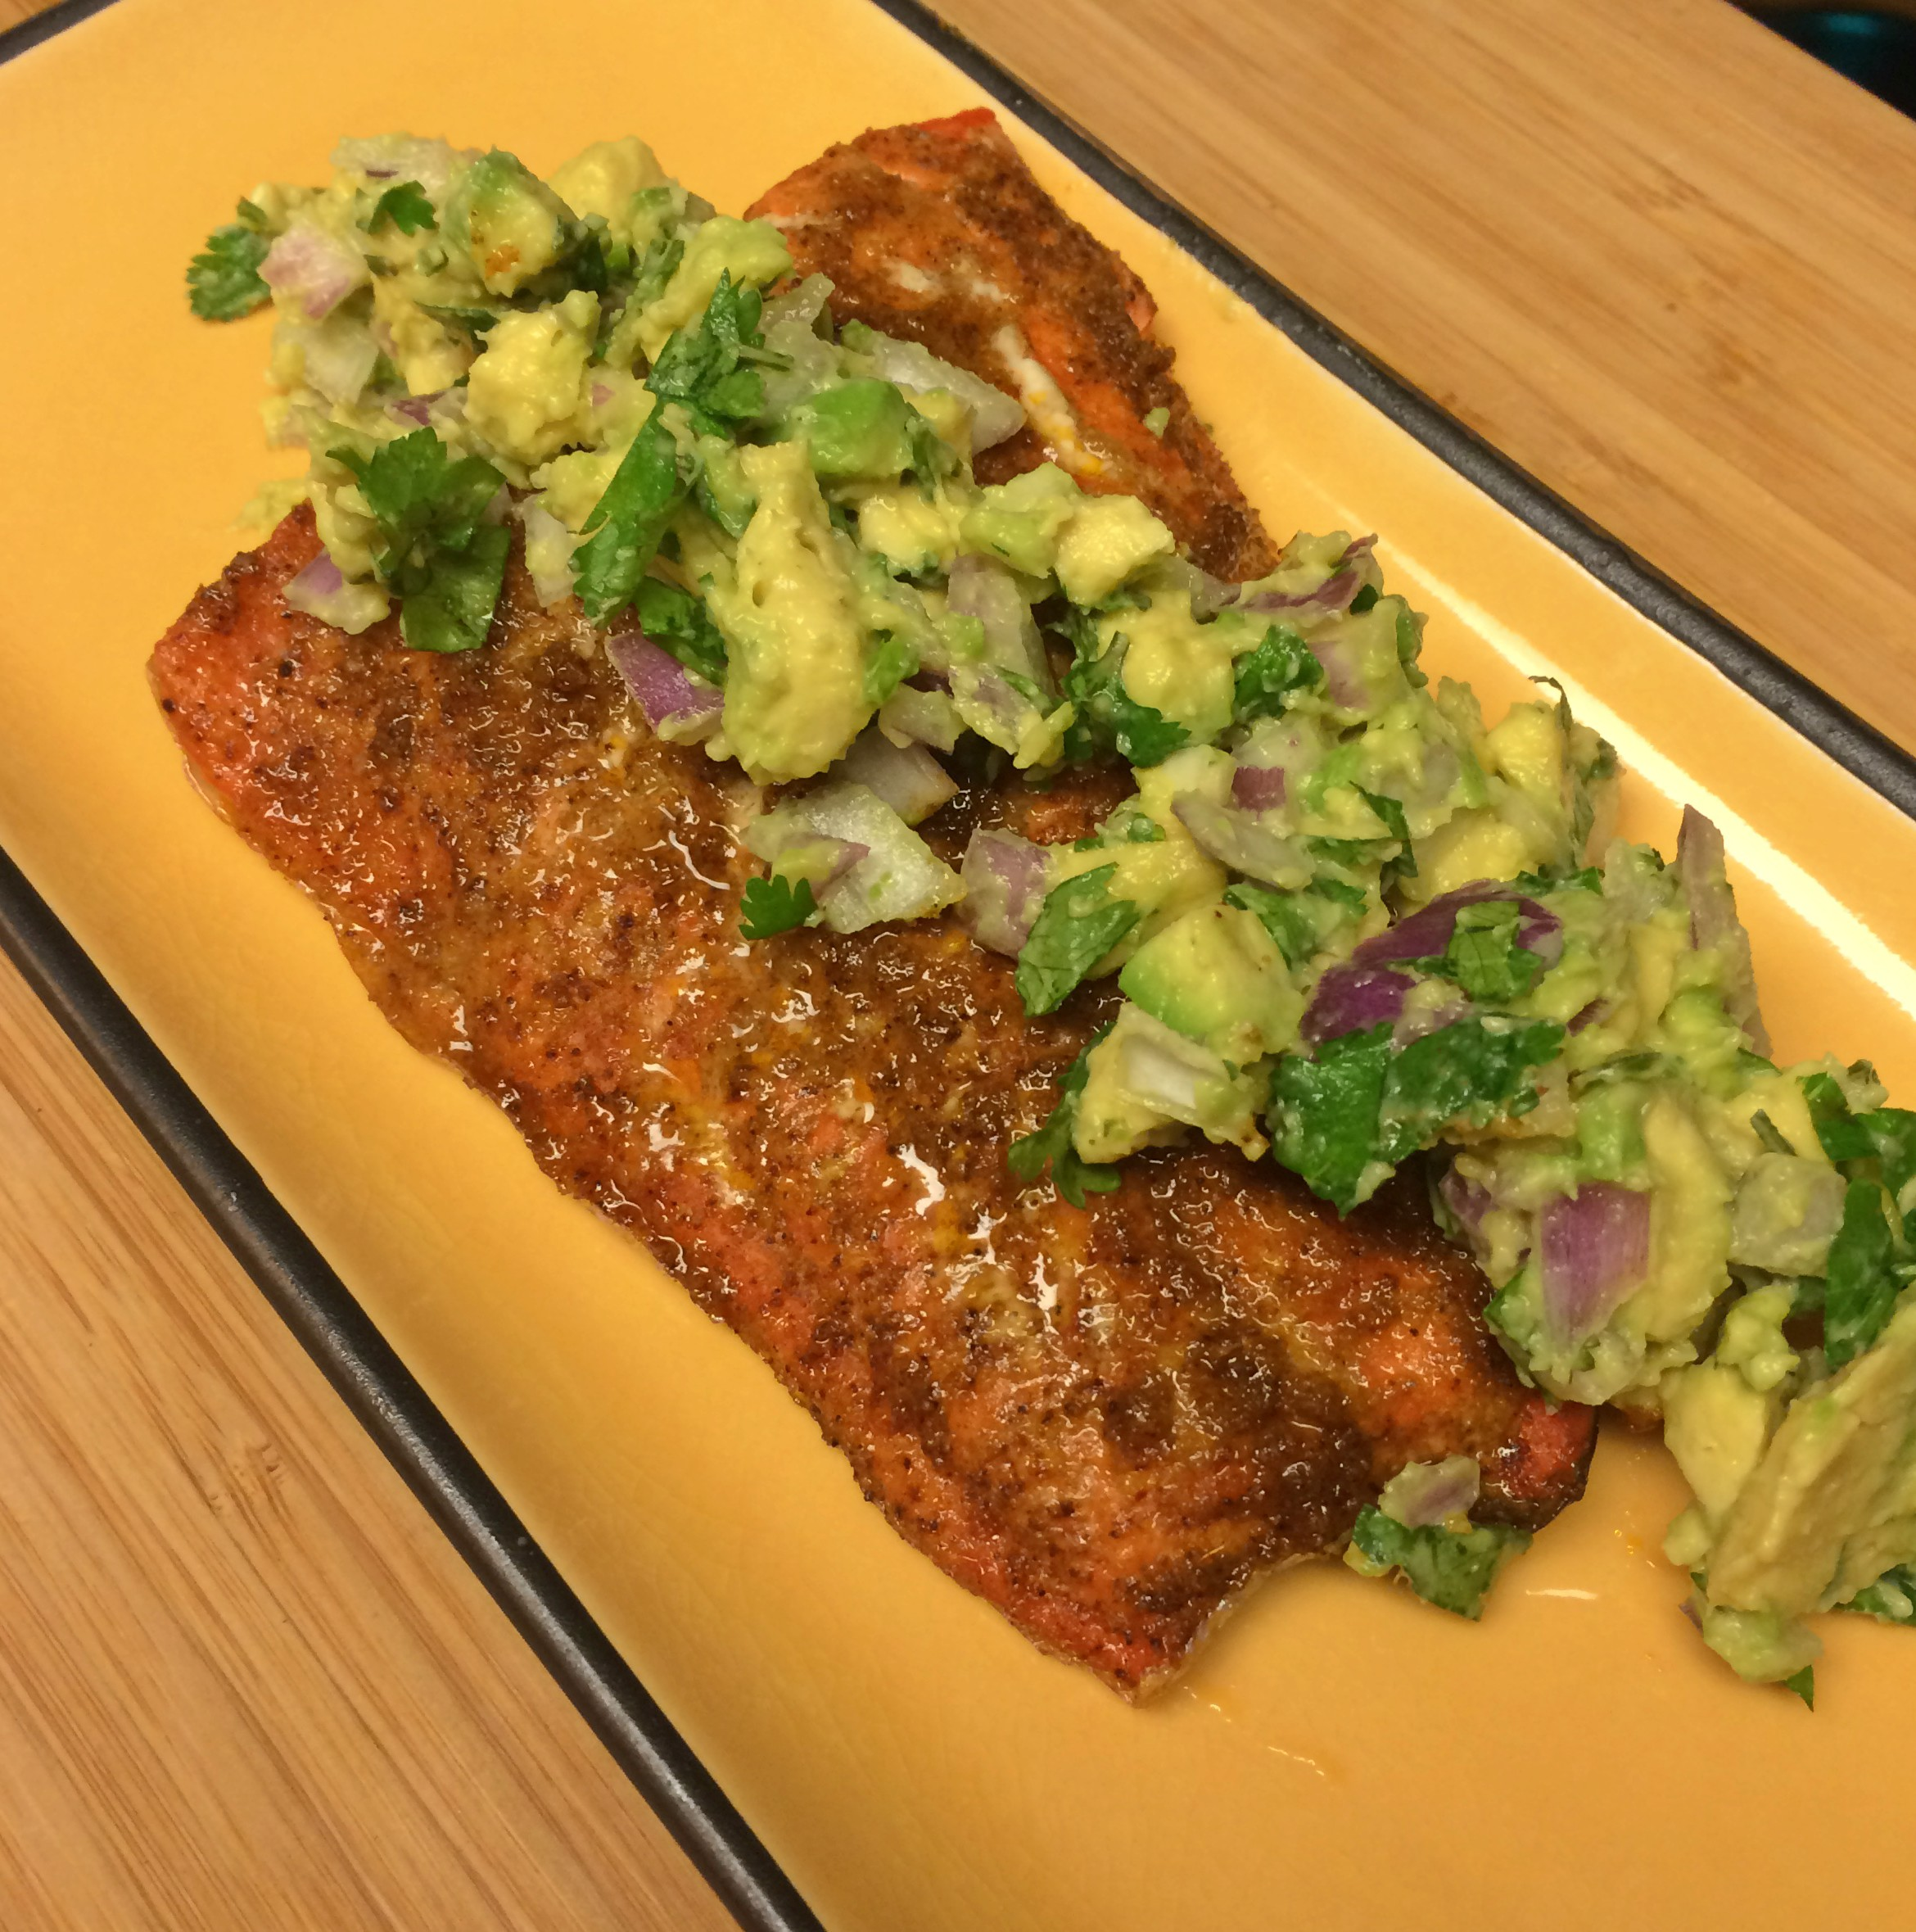 Chili Paprika Salmon with Mango Avocado Salsa